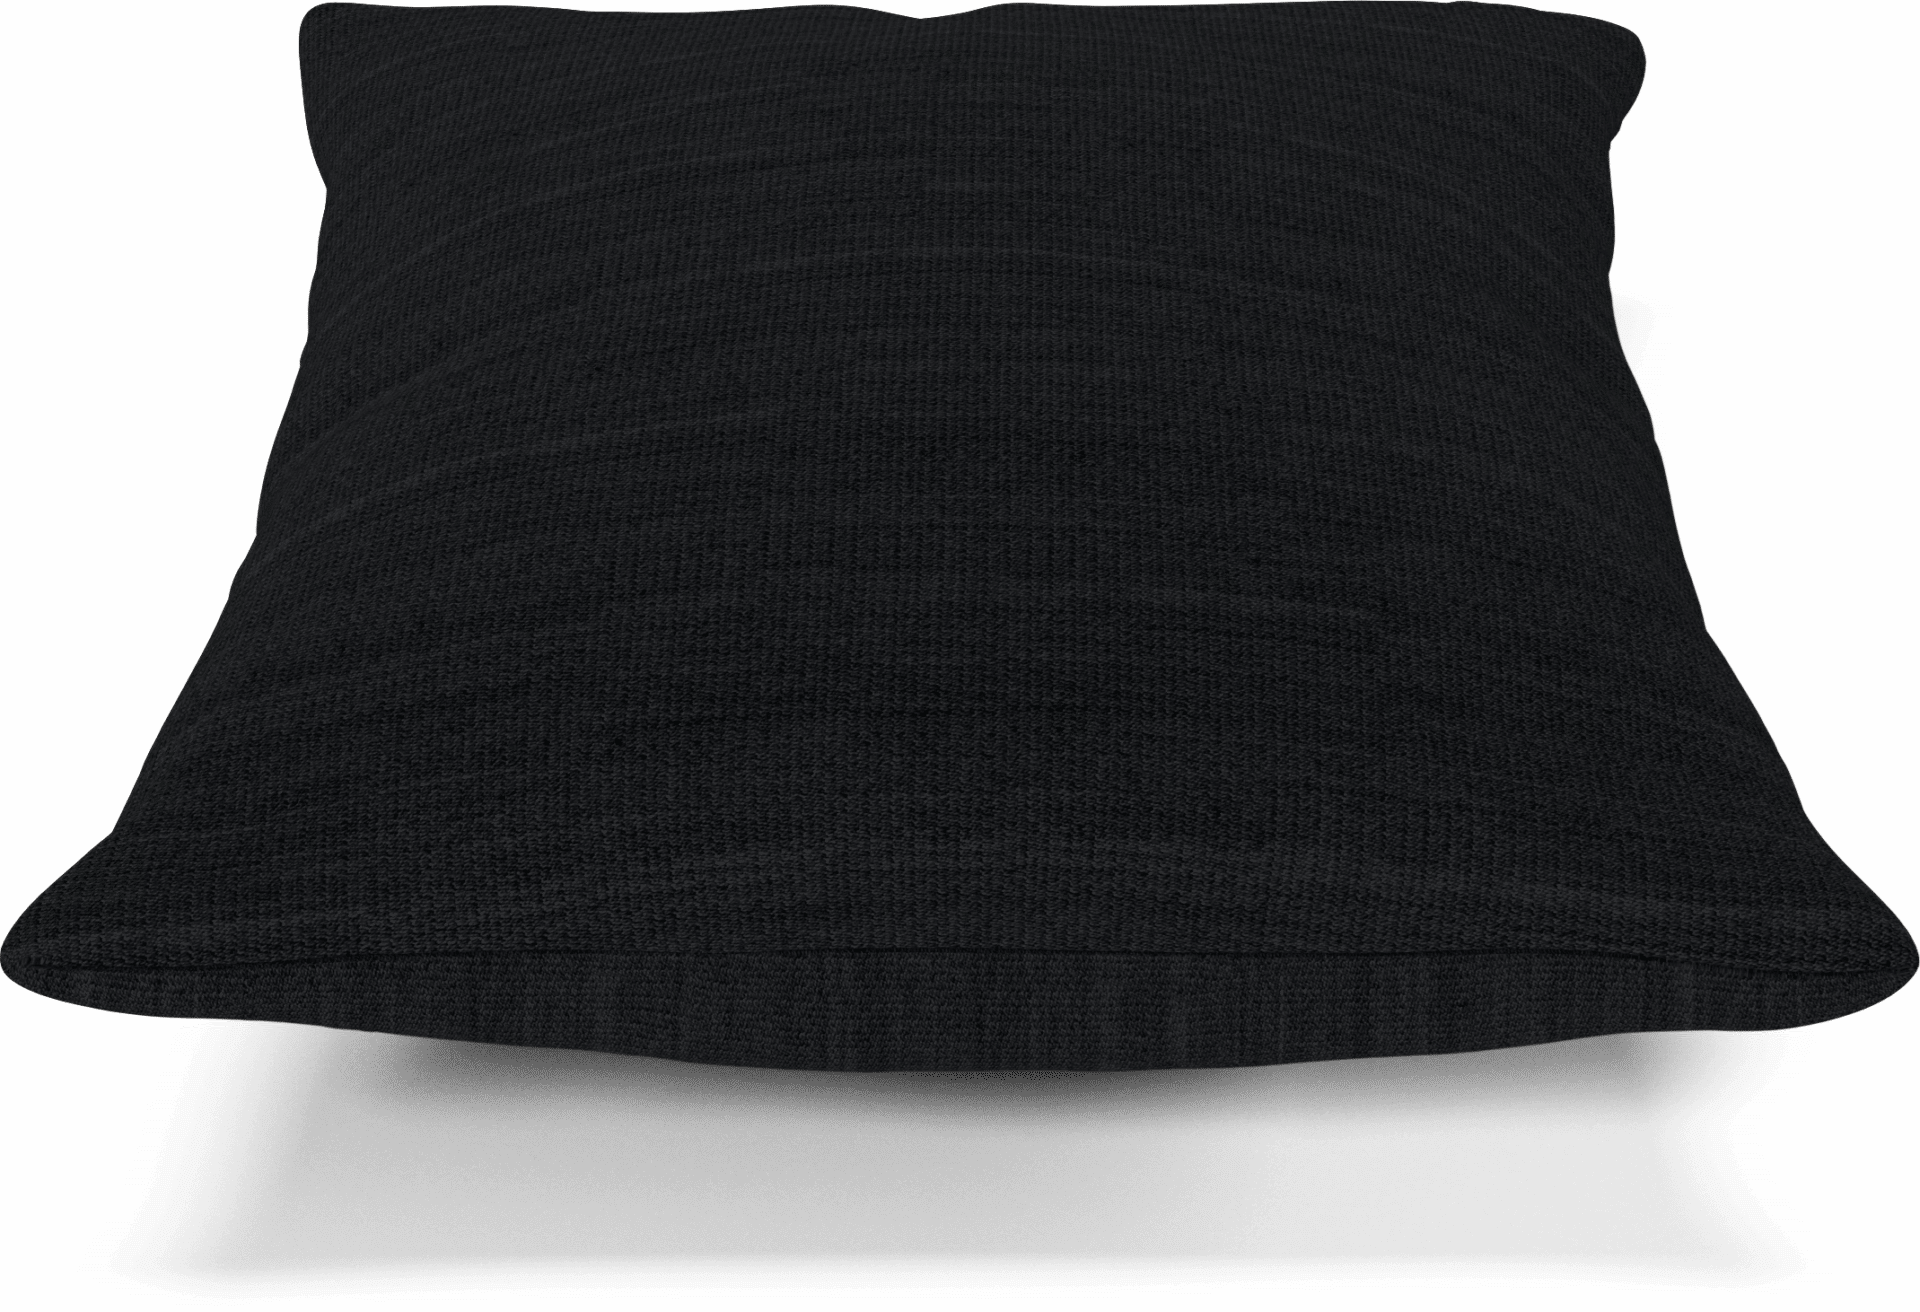 The classic cushion cm laine by bolia comes in a gorgeous black